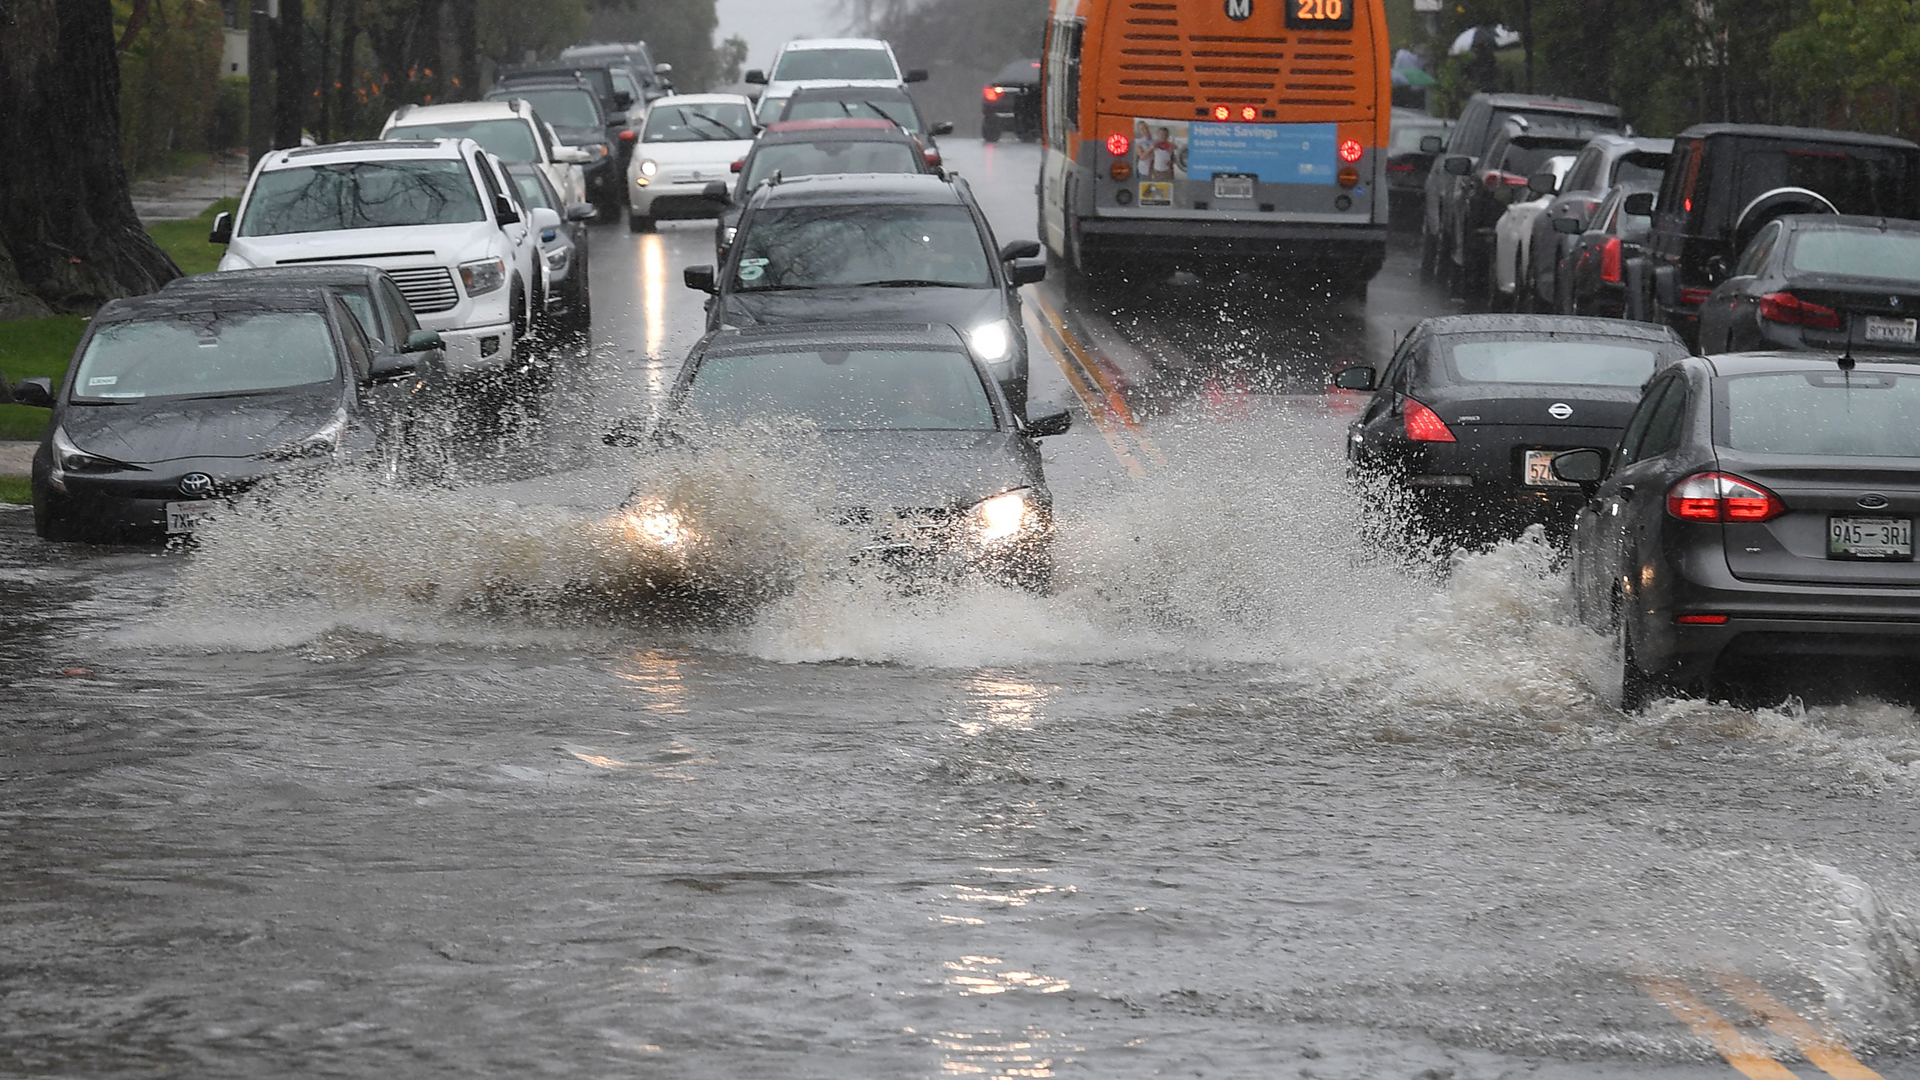 Cars drive through a flooded street after a storm dumped heavy rain on Los Angeles on February 2, 2019. (Credit: MARK RALSTON/AFP/Getty Images)